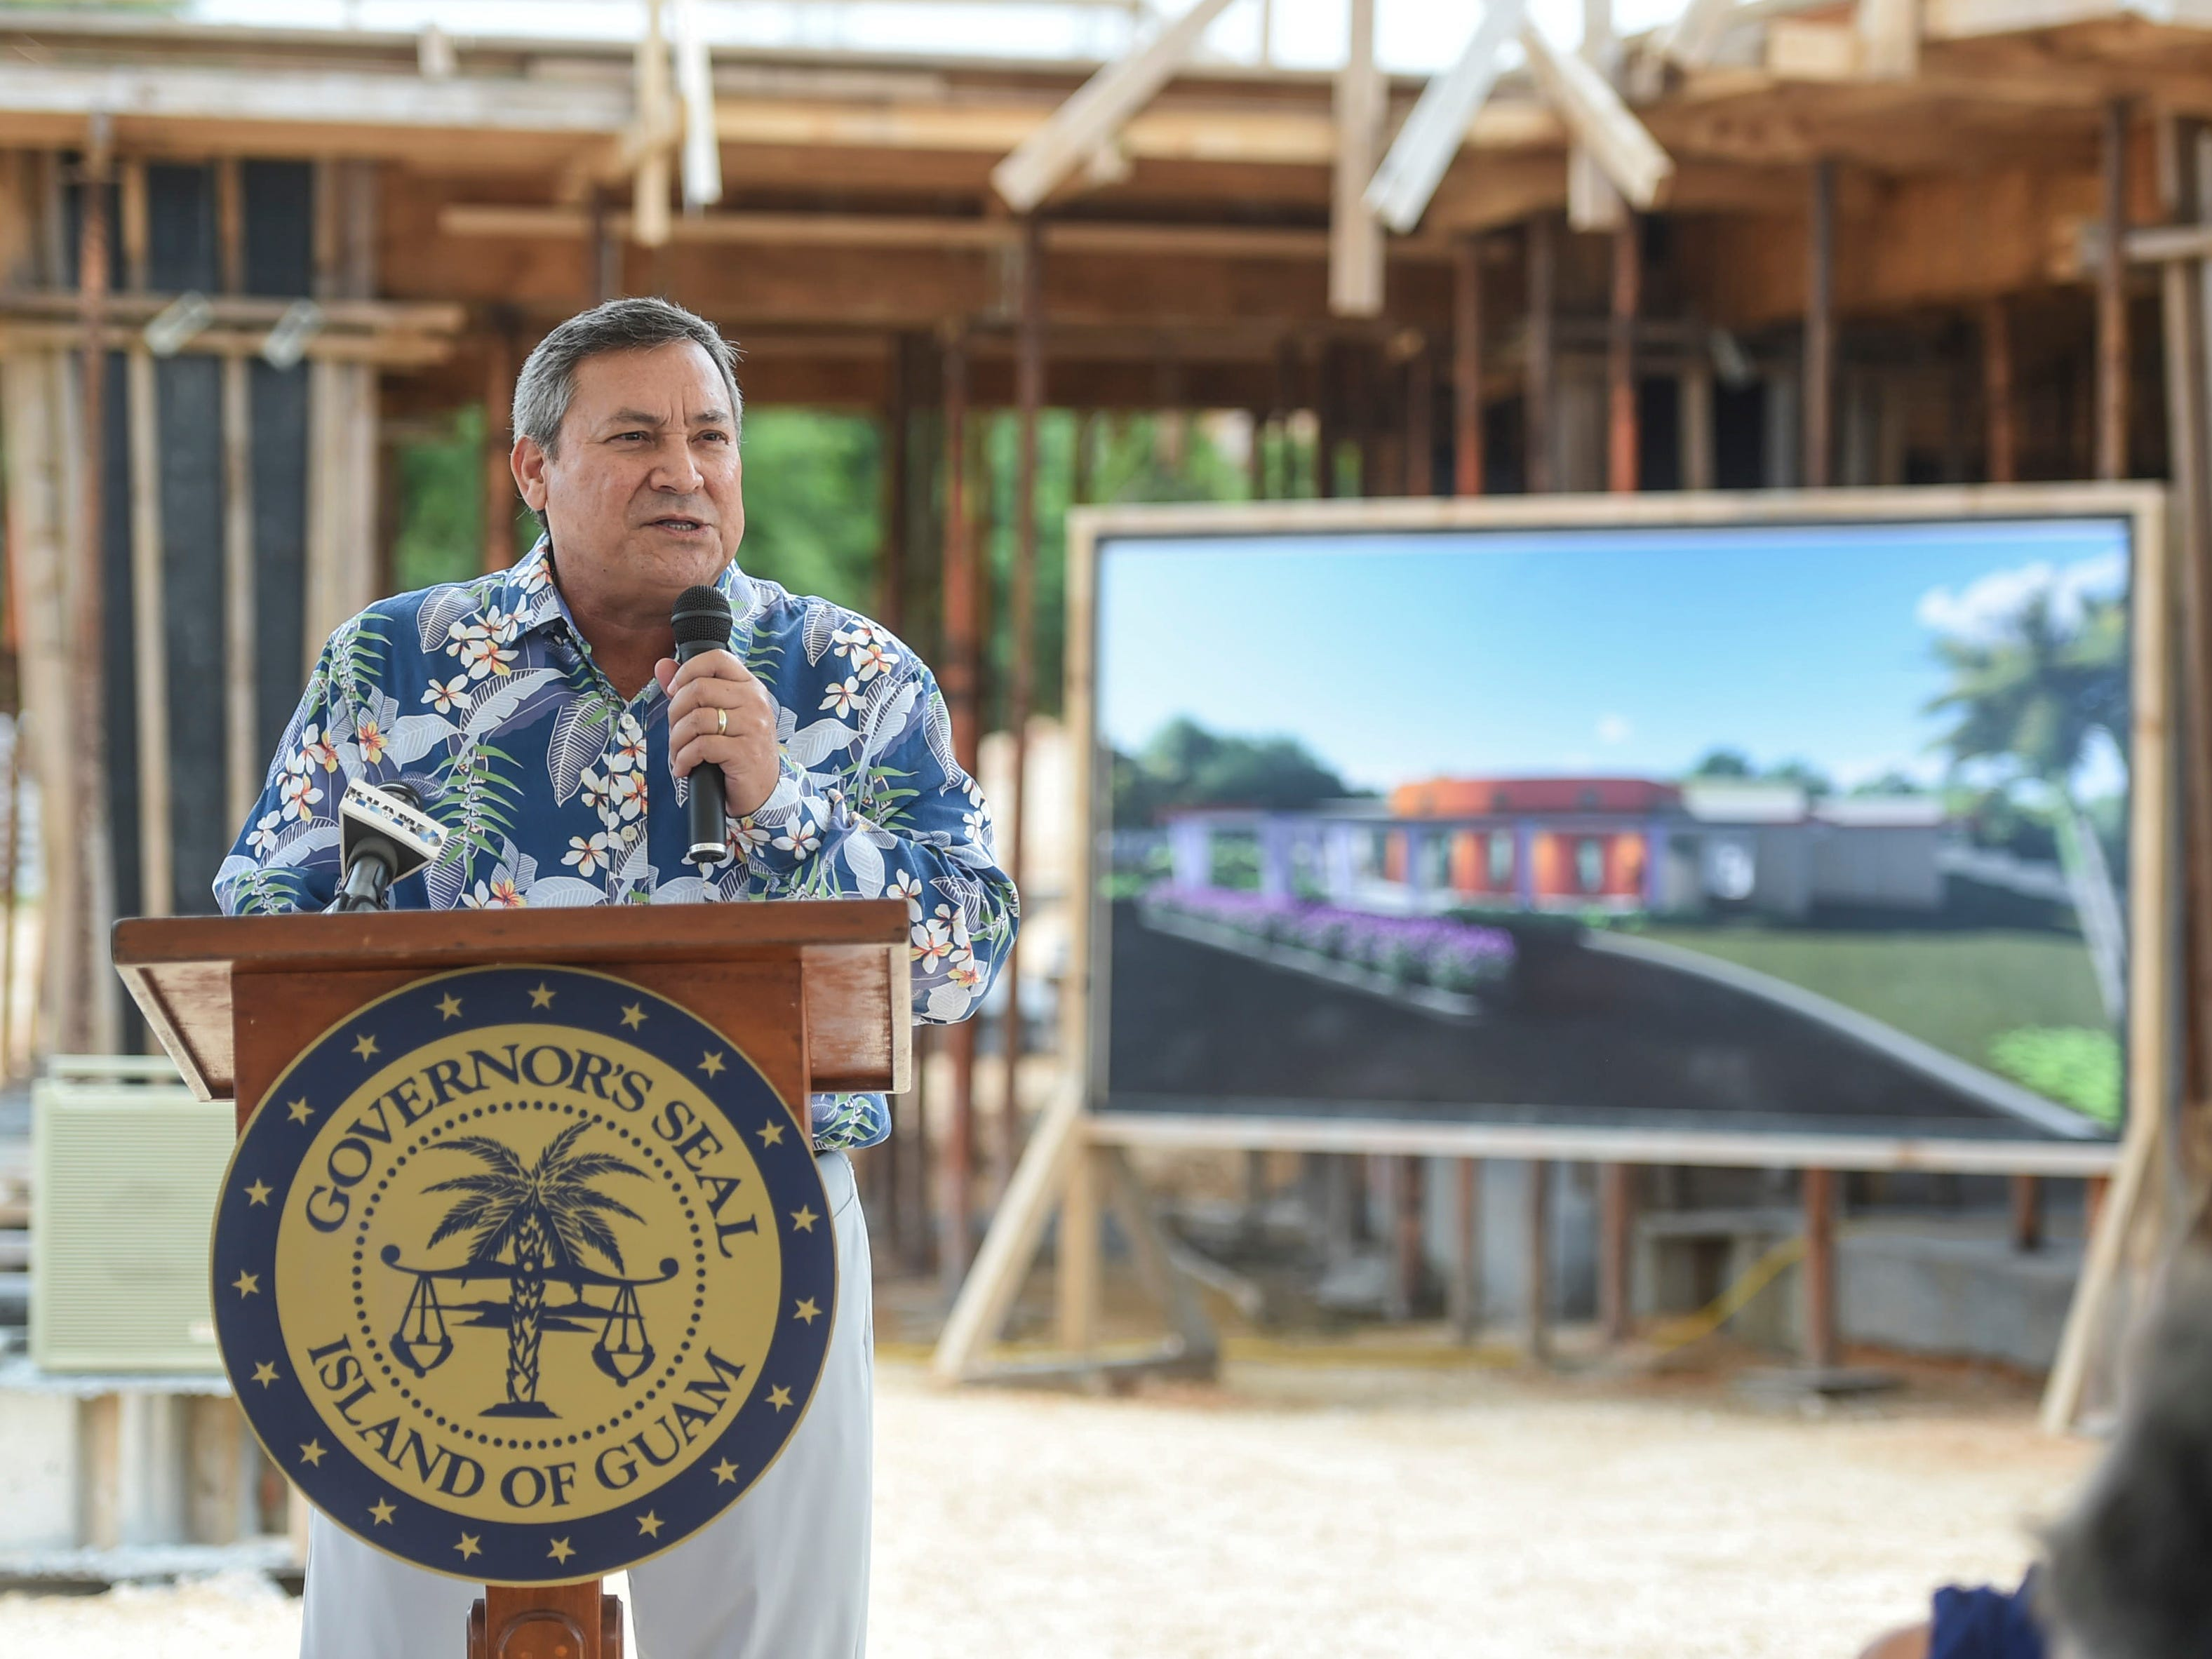 Gov. Eddie Baza Calvo speaks on the services and accomplishments of Sister Mary Brigid Perez during a ceremony recognizing the redesignation of the former Rigålu House to I Guma Mina'åse' Sister Mary Brigid Perez, R.S.M. in Barrigada on Dec. 31, 2018.